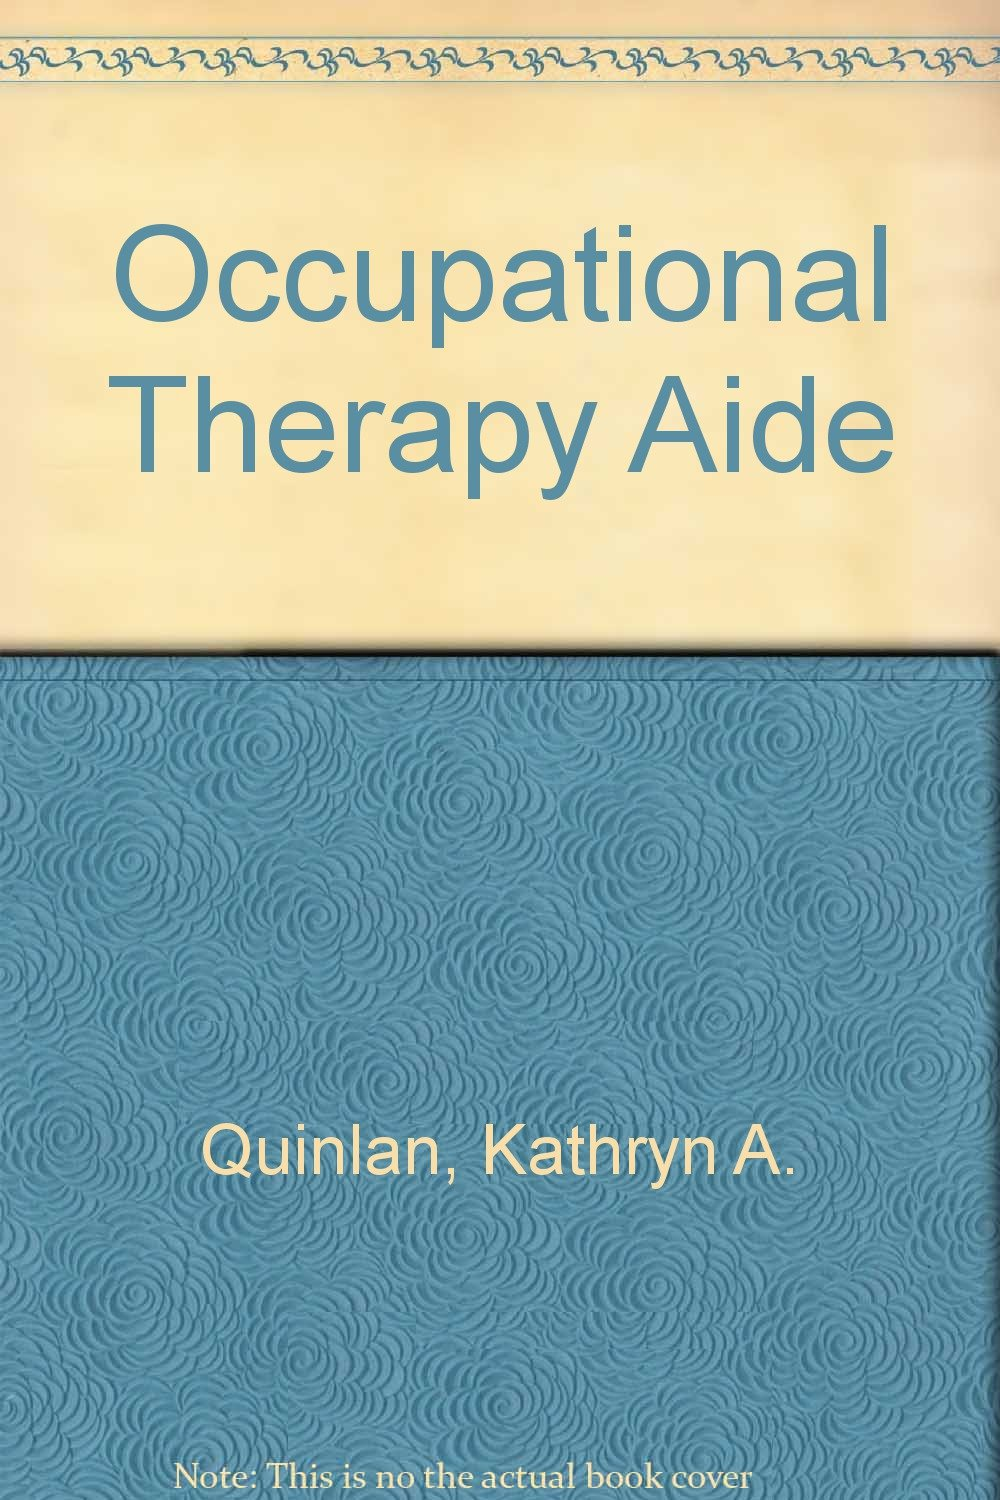 Occupational Therapy Aide 9780516213996 Amazon Books